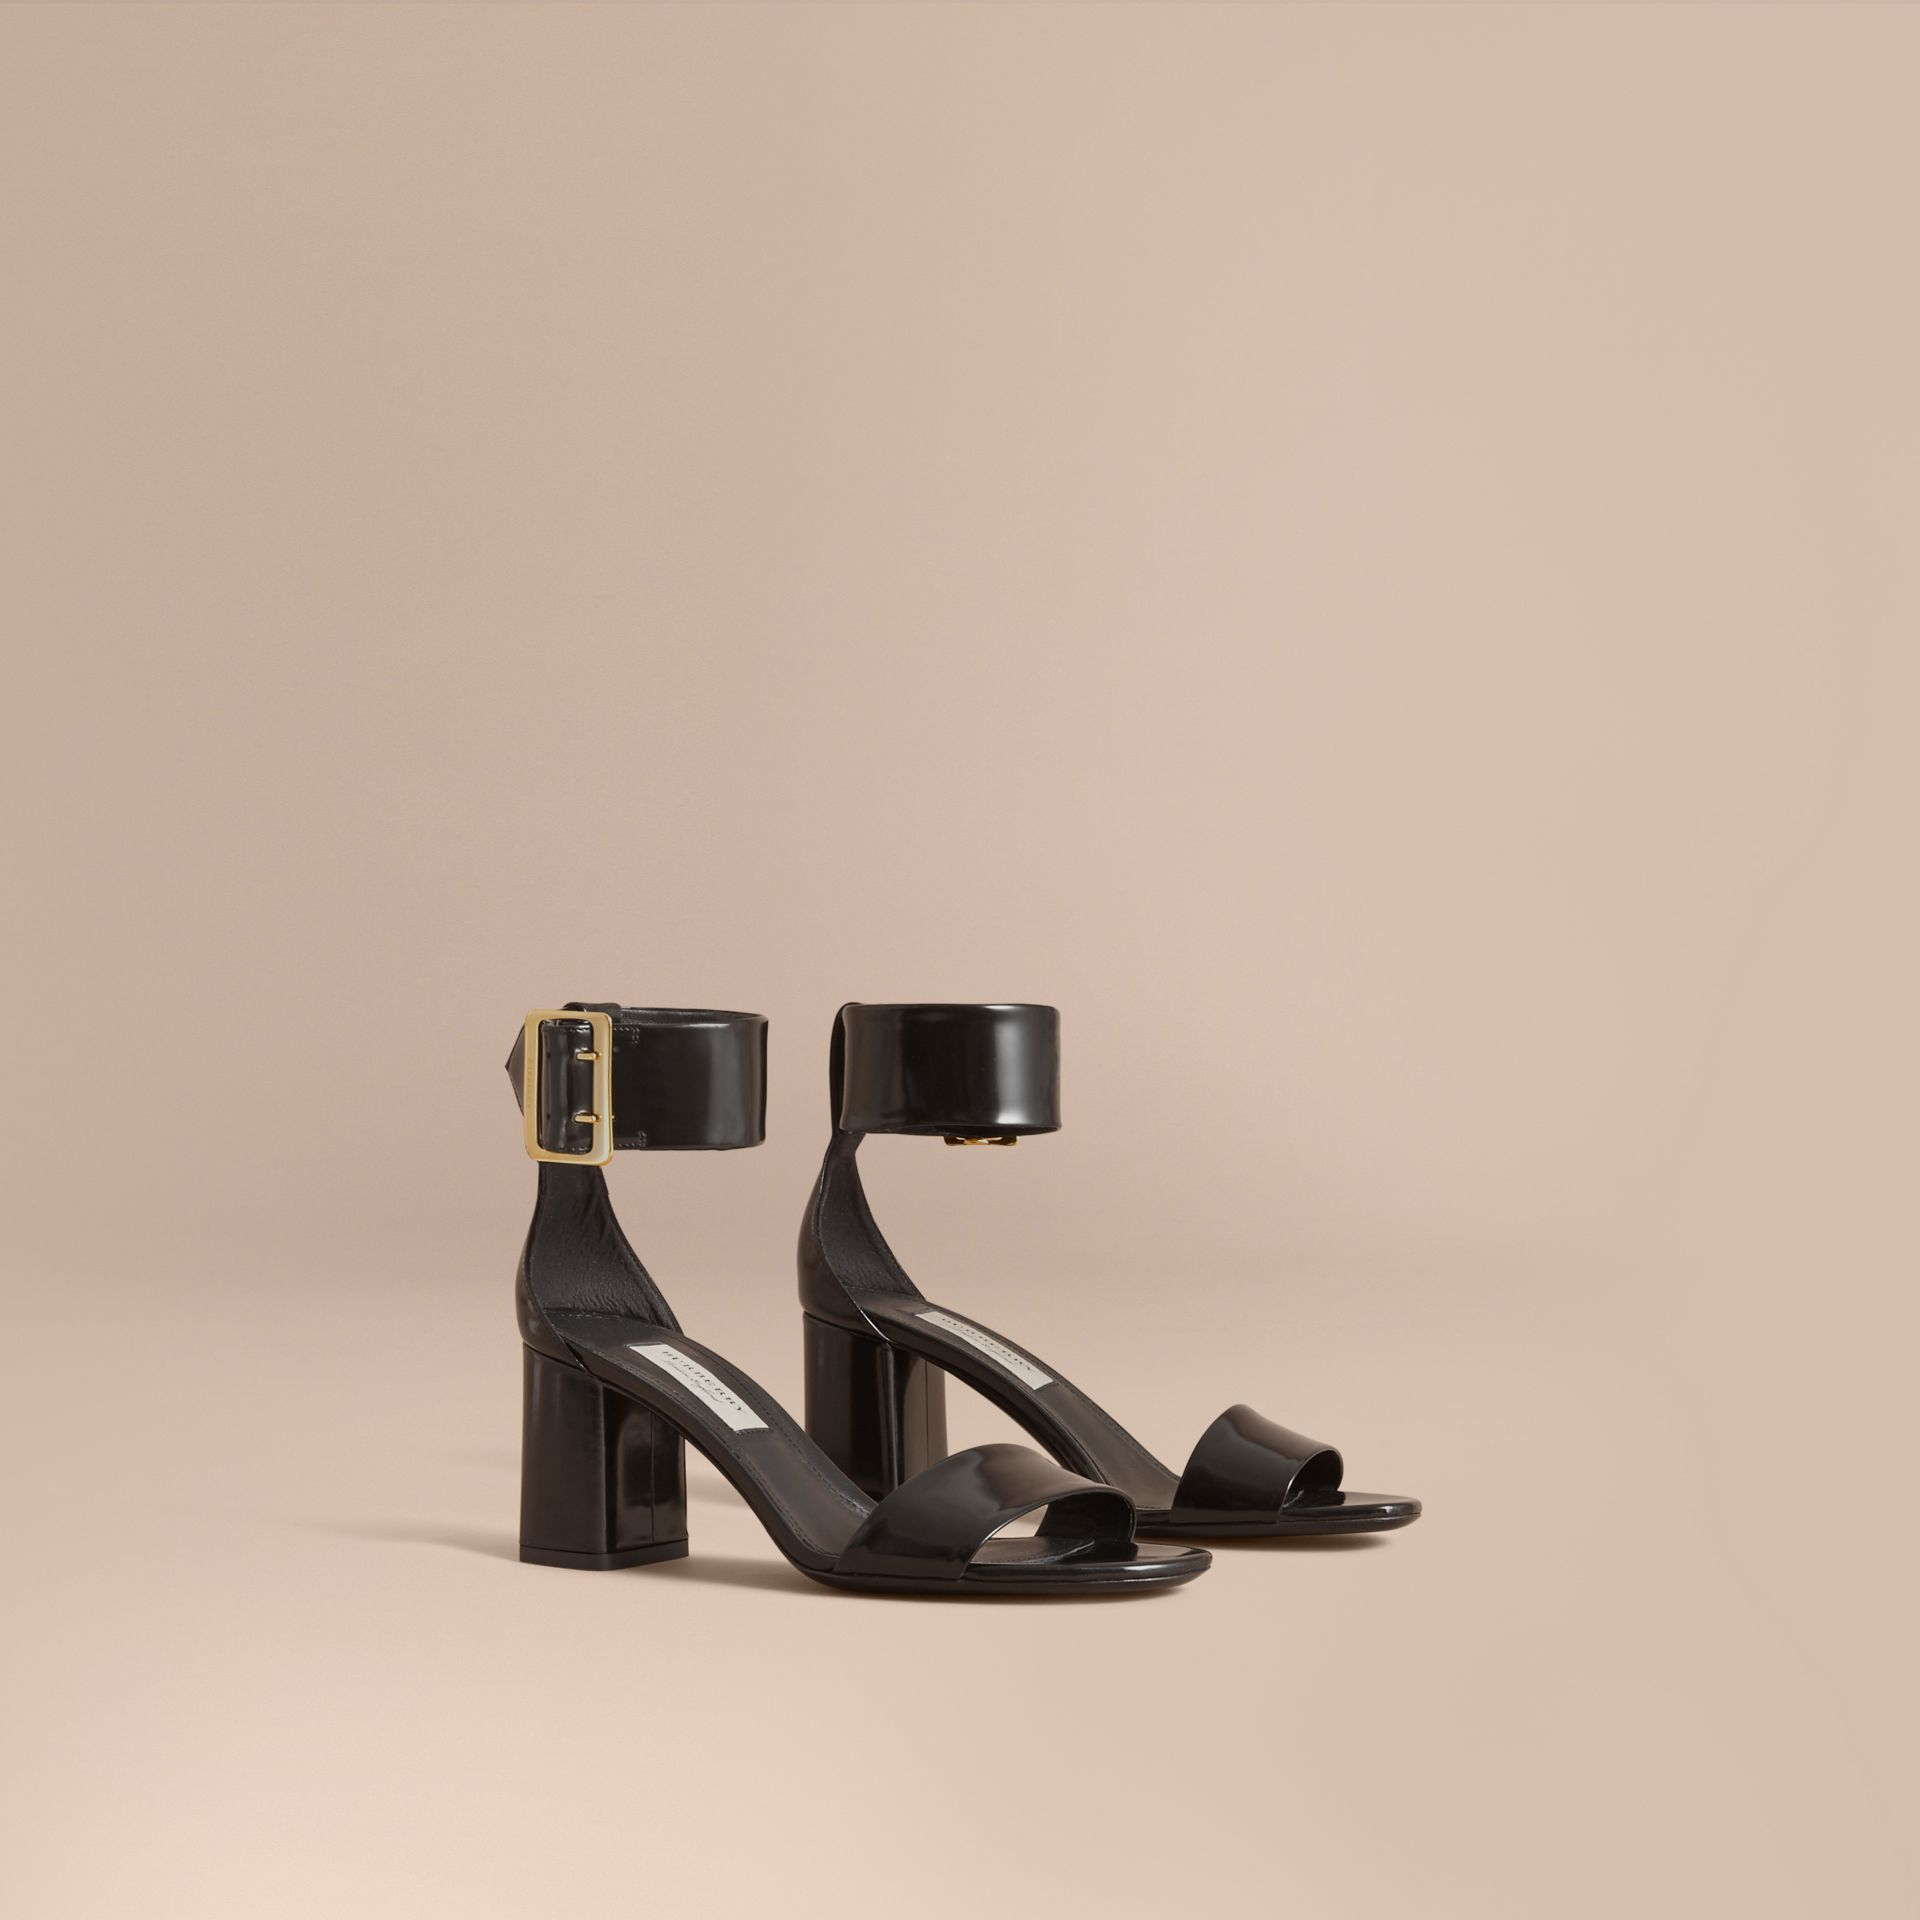 Buckle Detail Patent Leather Sandals in Black - Women | Burberry United States - gallery image 1